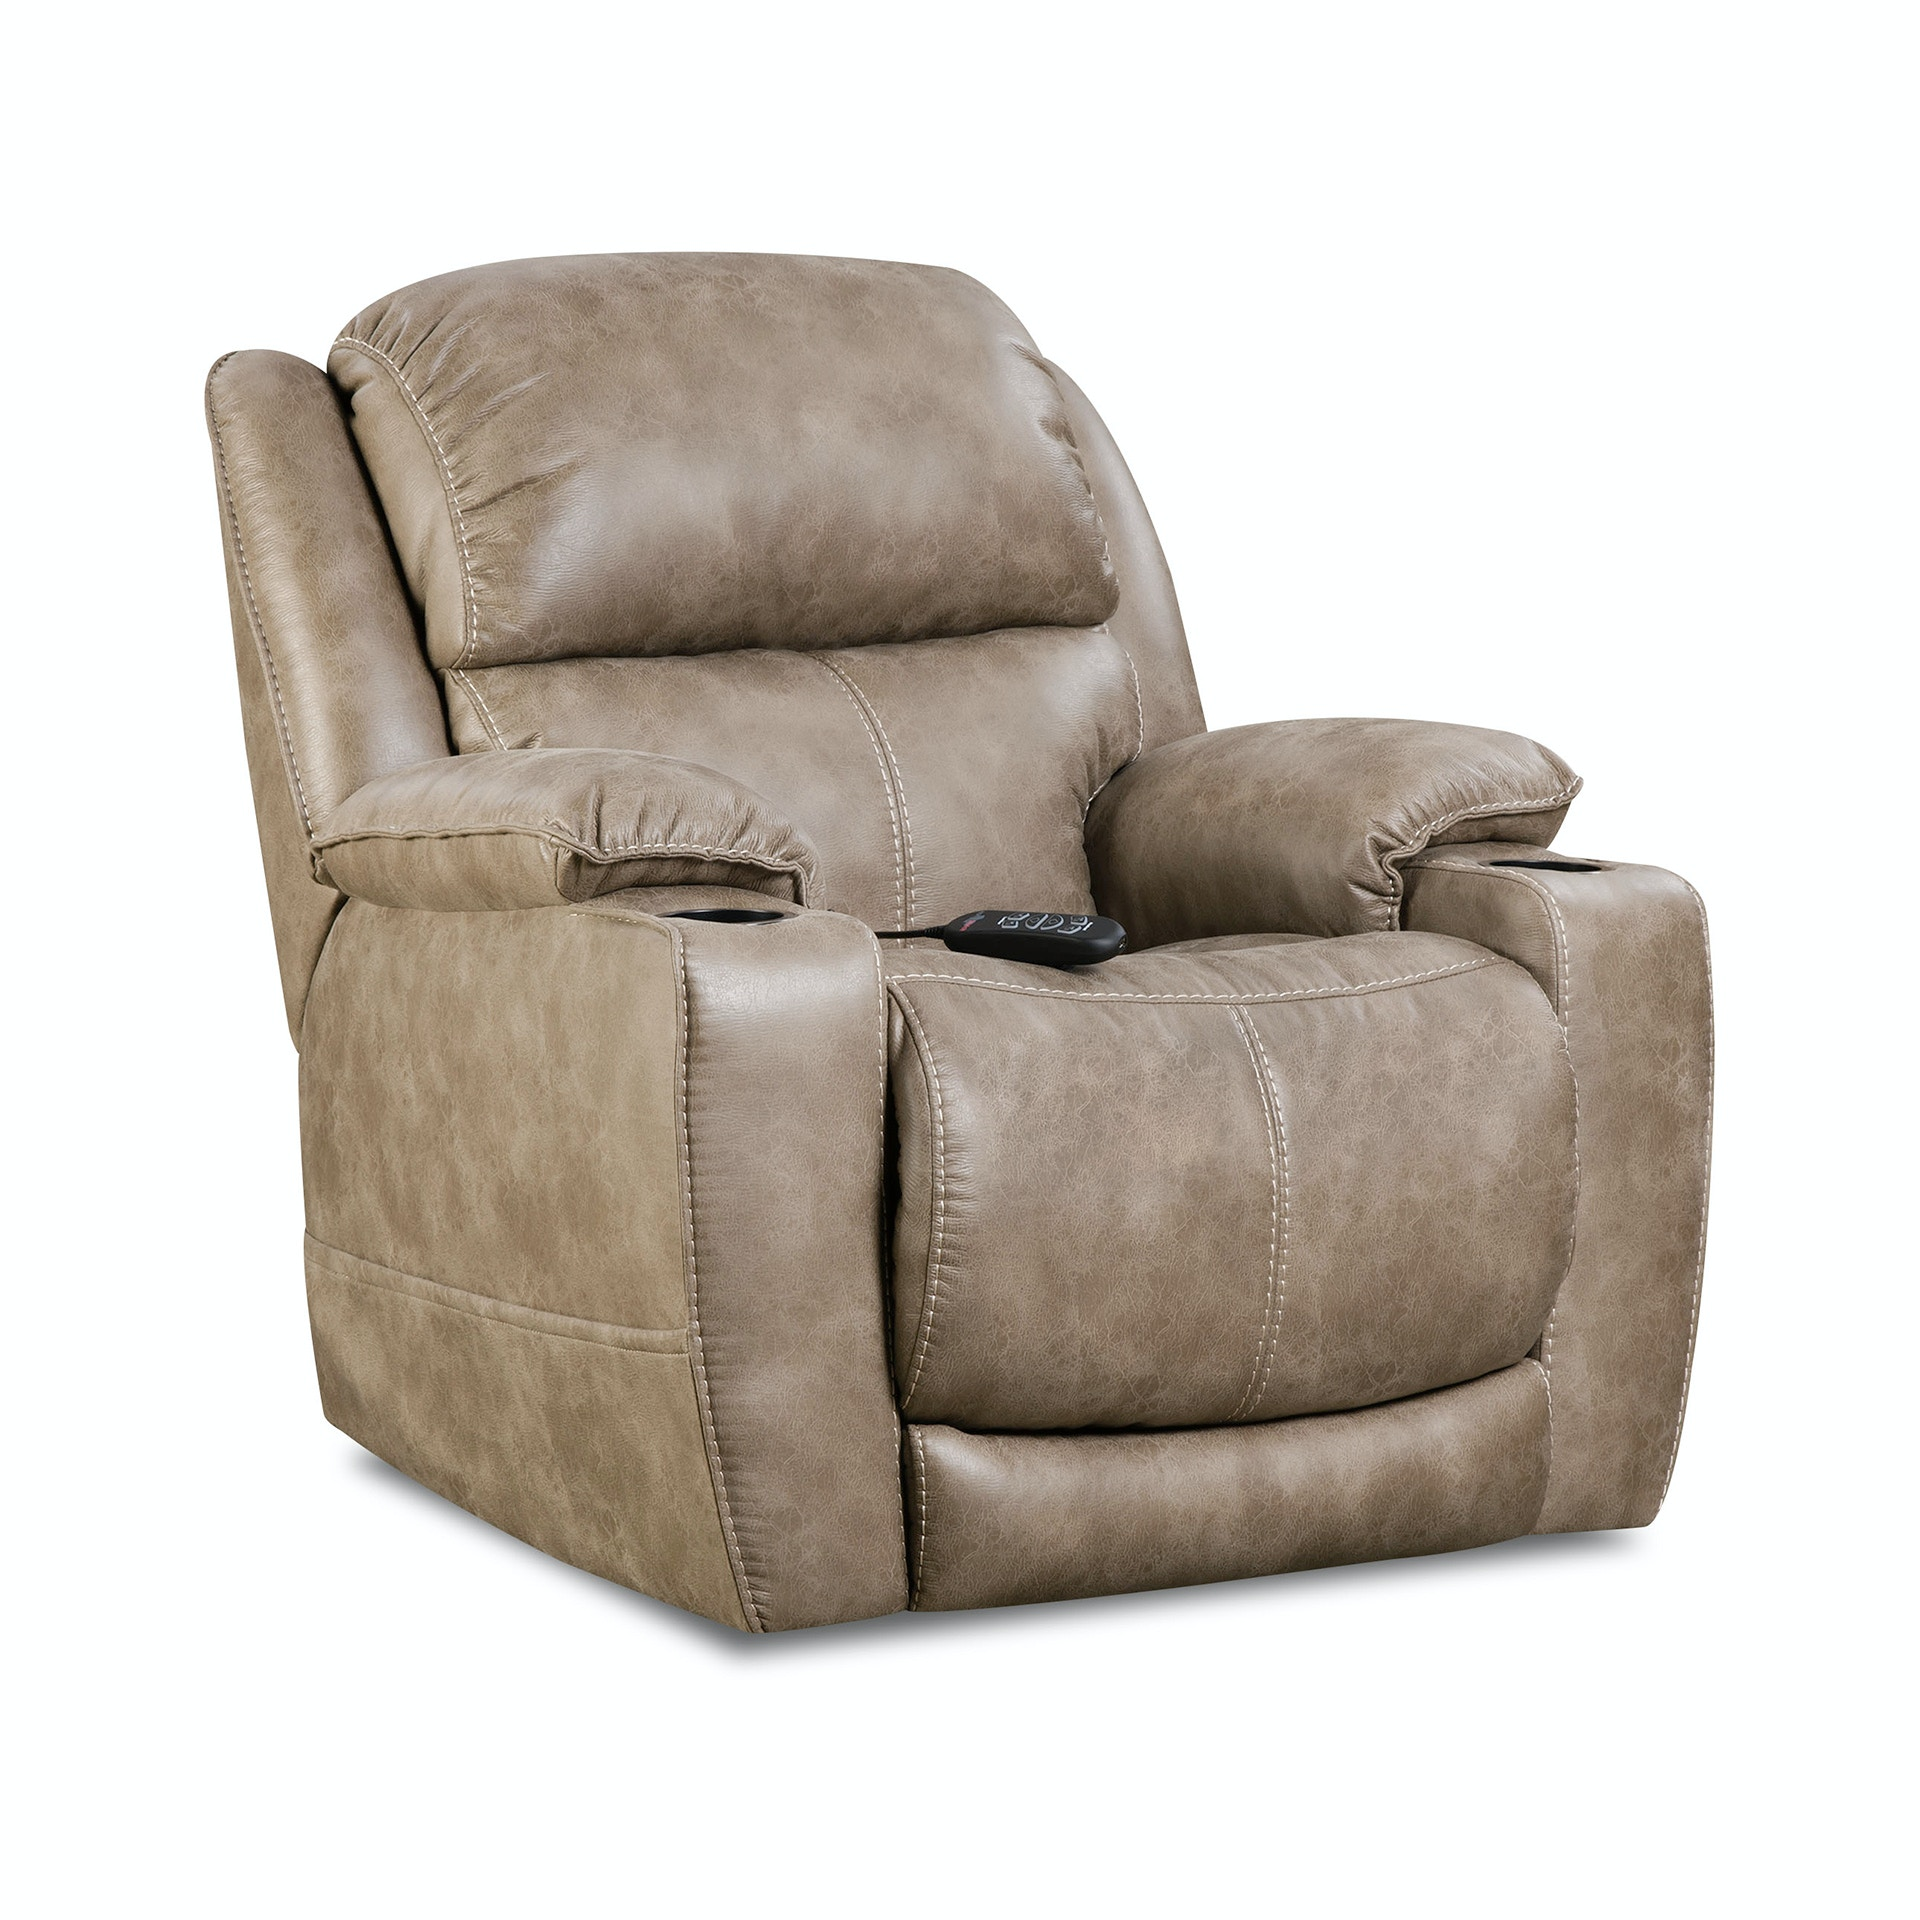 000008866550. Home Theater Recliner